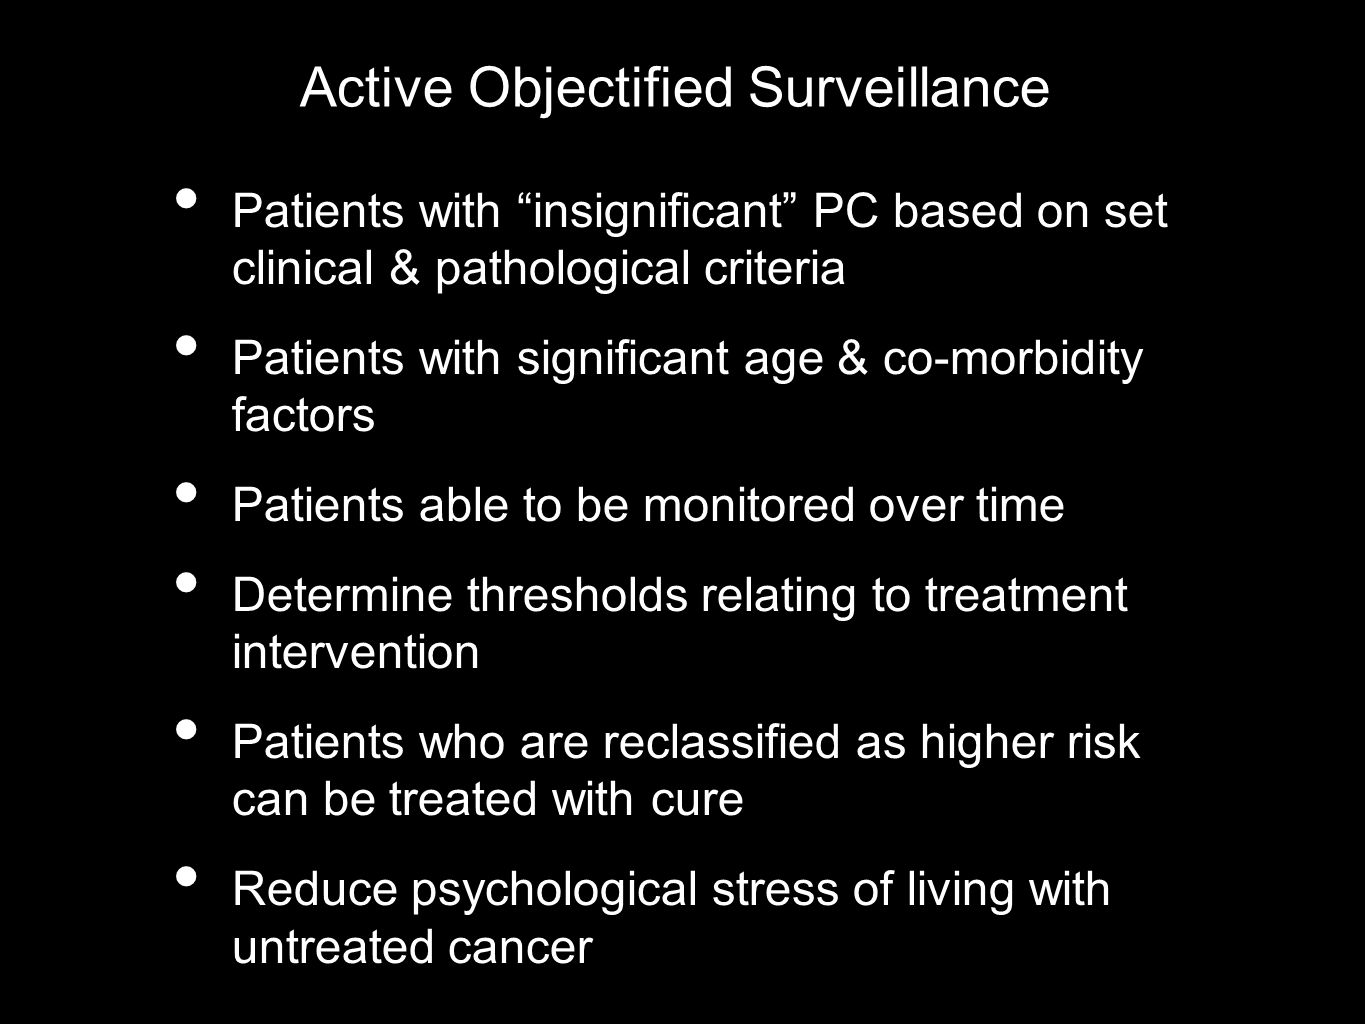 Active Objectified Surveillance Patients with insignificant PC based on set clinical & pathological criteria Patients with significant age & co-morbidity factors Patients able to be monitored over time Determine thresholds relating to treatment intervention Patients who are reclassified as higher risk can be treated with cure Reduce psychological stress of living with untreated cancer